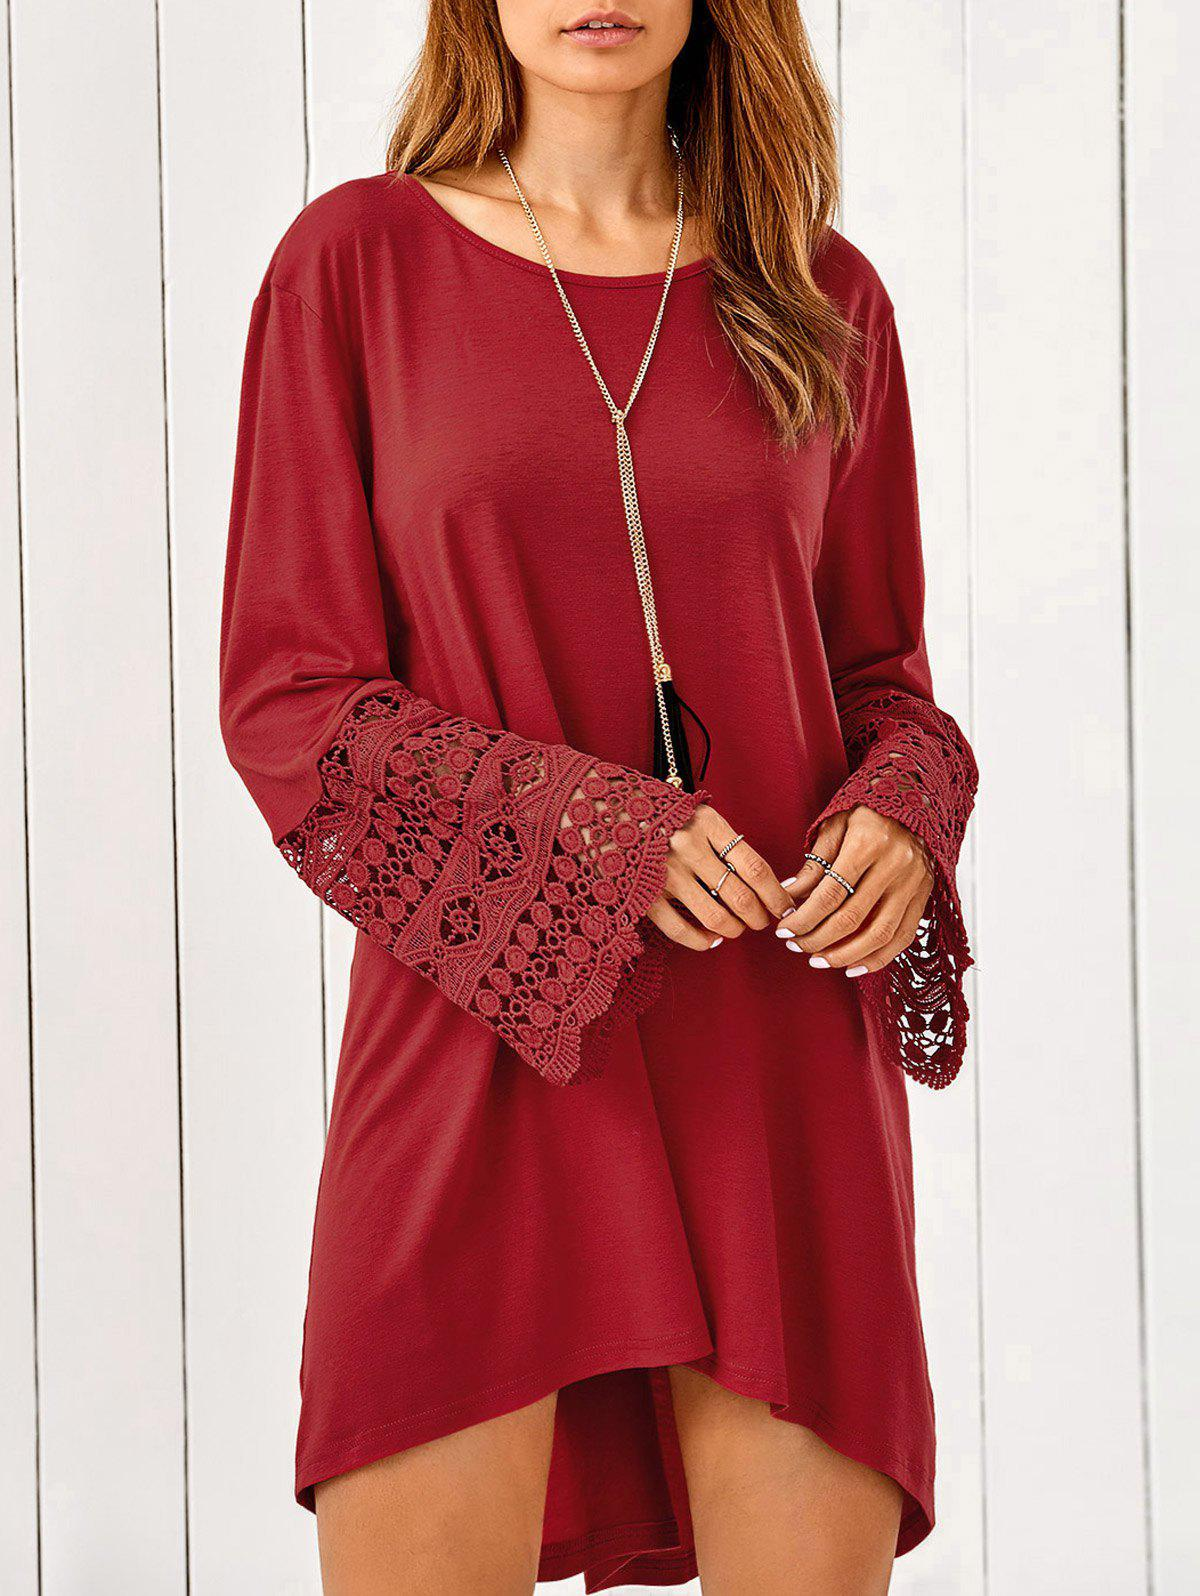 Lace Trim Long Sleeve High Low Tunic Dress plaid trim tunic top